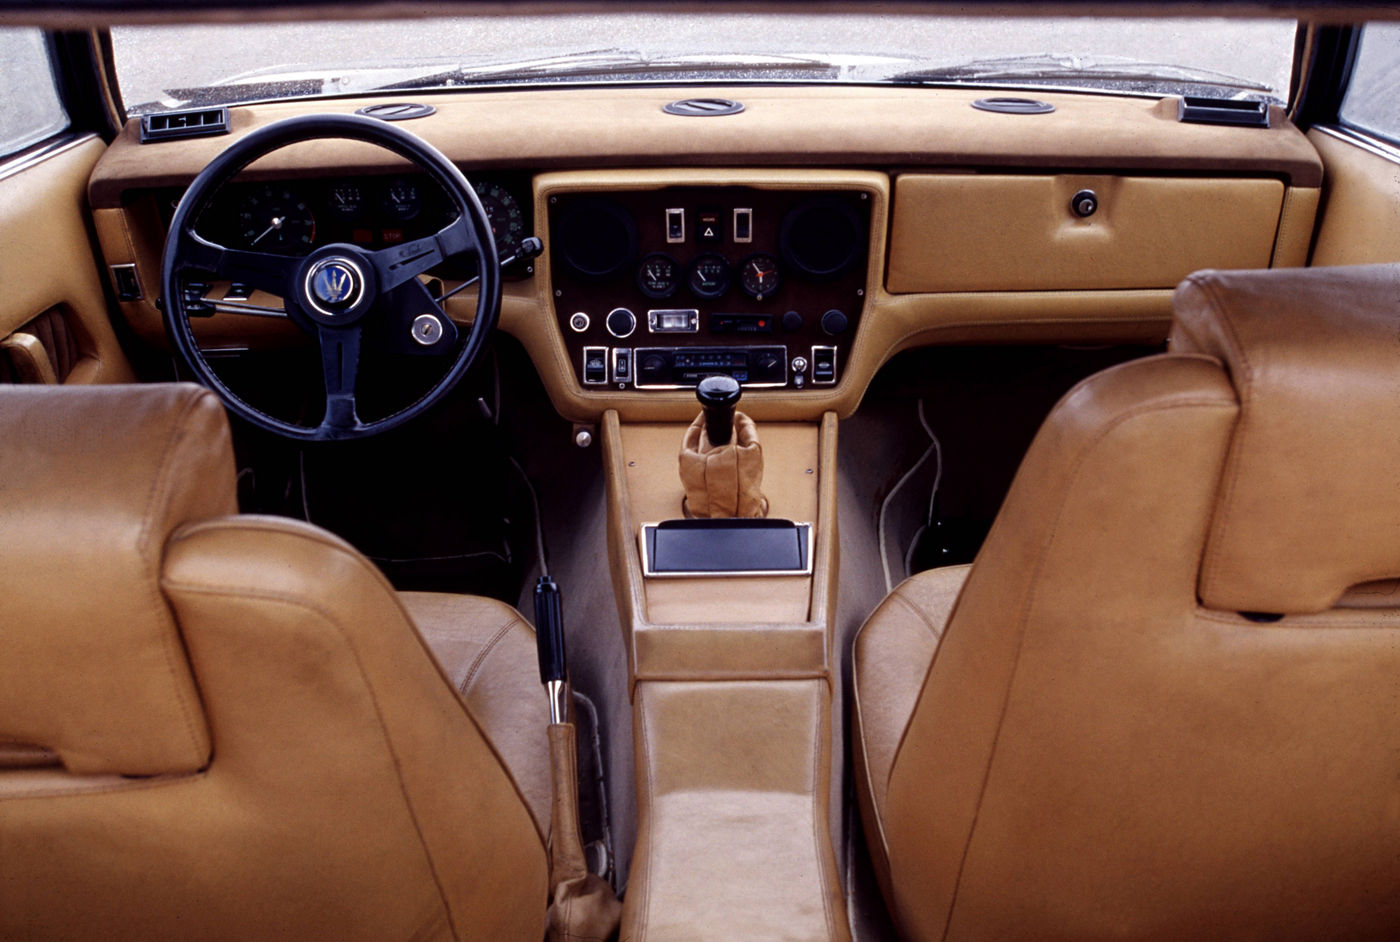 1974 Maserati Khamsin - interior view of the historical 2-door coupe